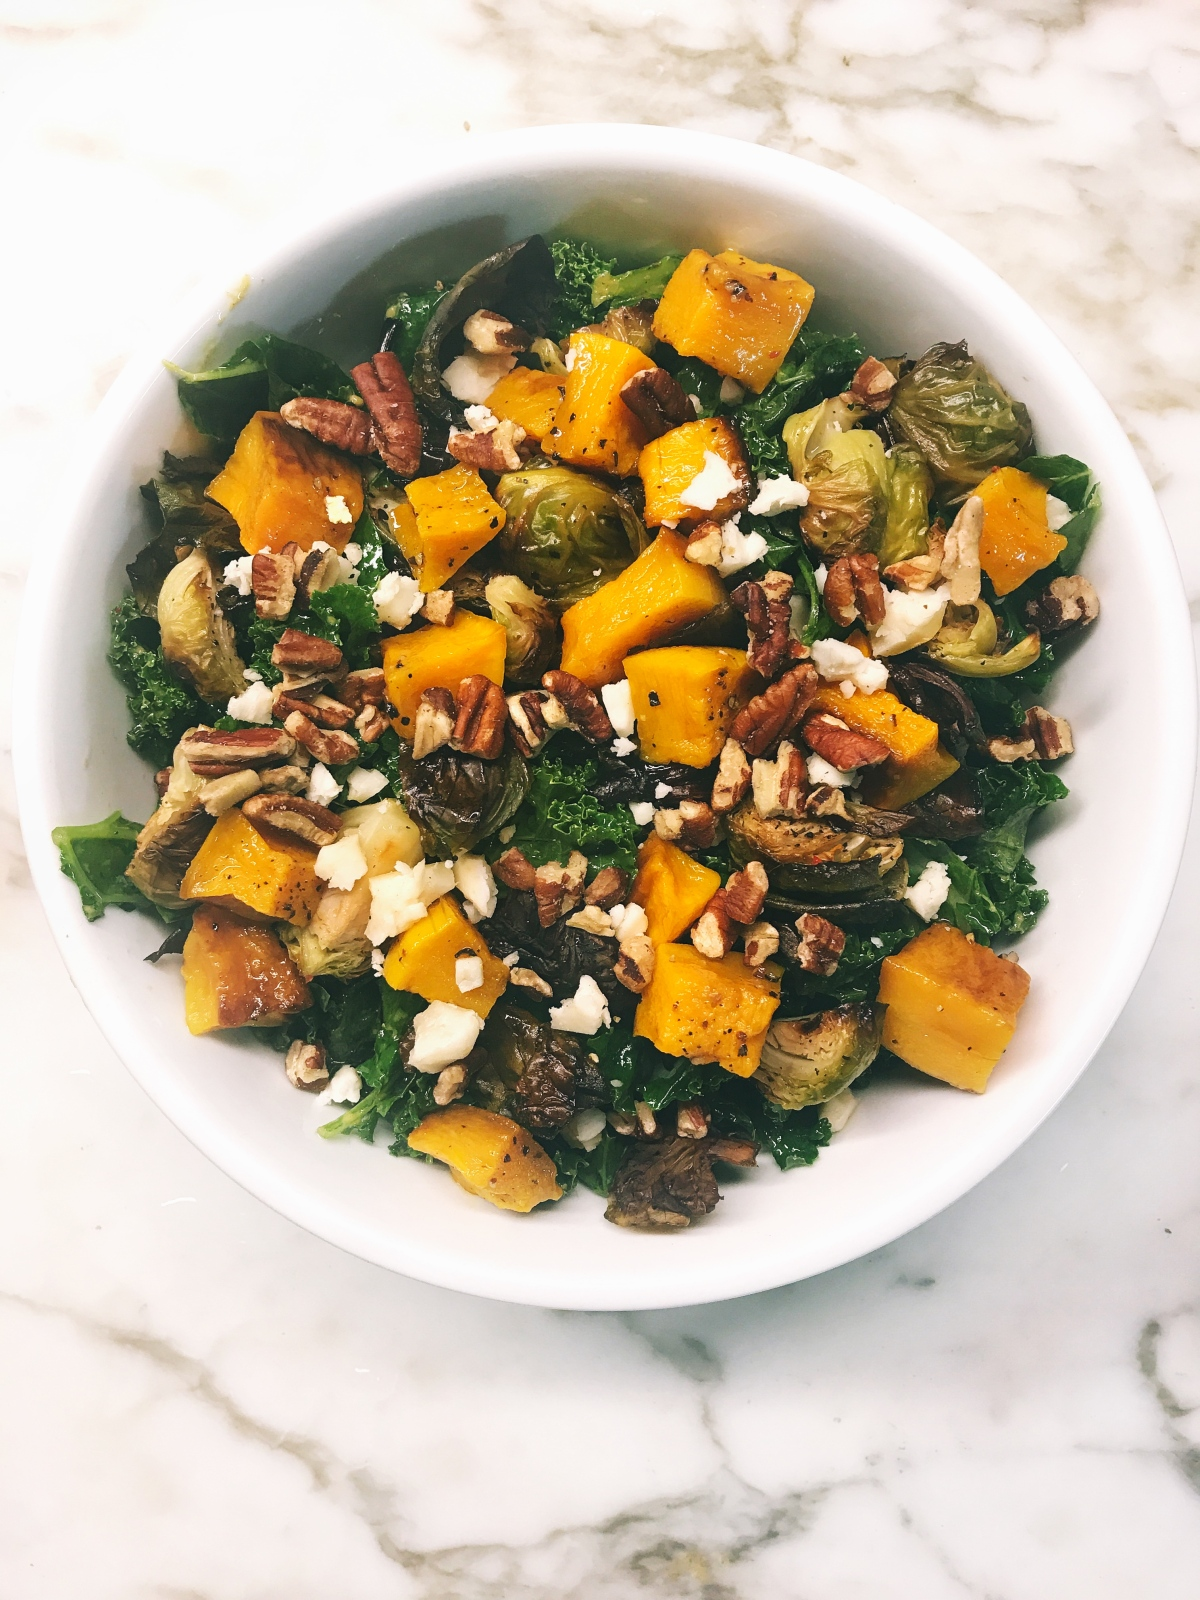 Autumn in a Bowl: Kale Salad w/ Roasted Butternut Squash & Brussel Sprouts, Pecans, and Goat Cheese